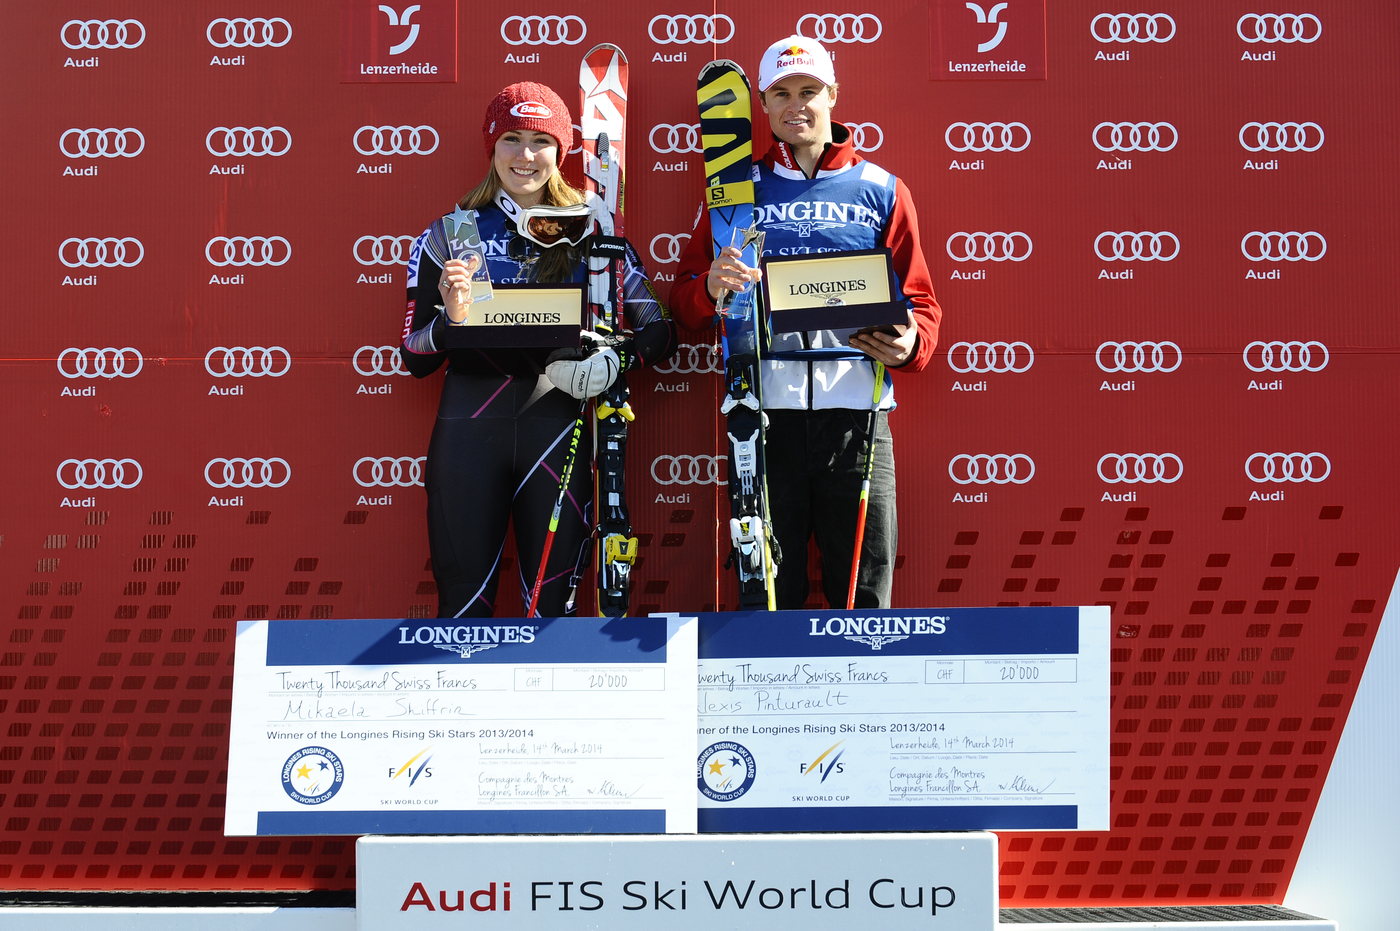 Longines Alpine Skiing Event: Mikaela Shiffrin and Alexis Pinturault are the Longines Rising Ski Stars 2013/2014 4